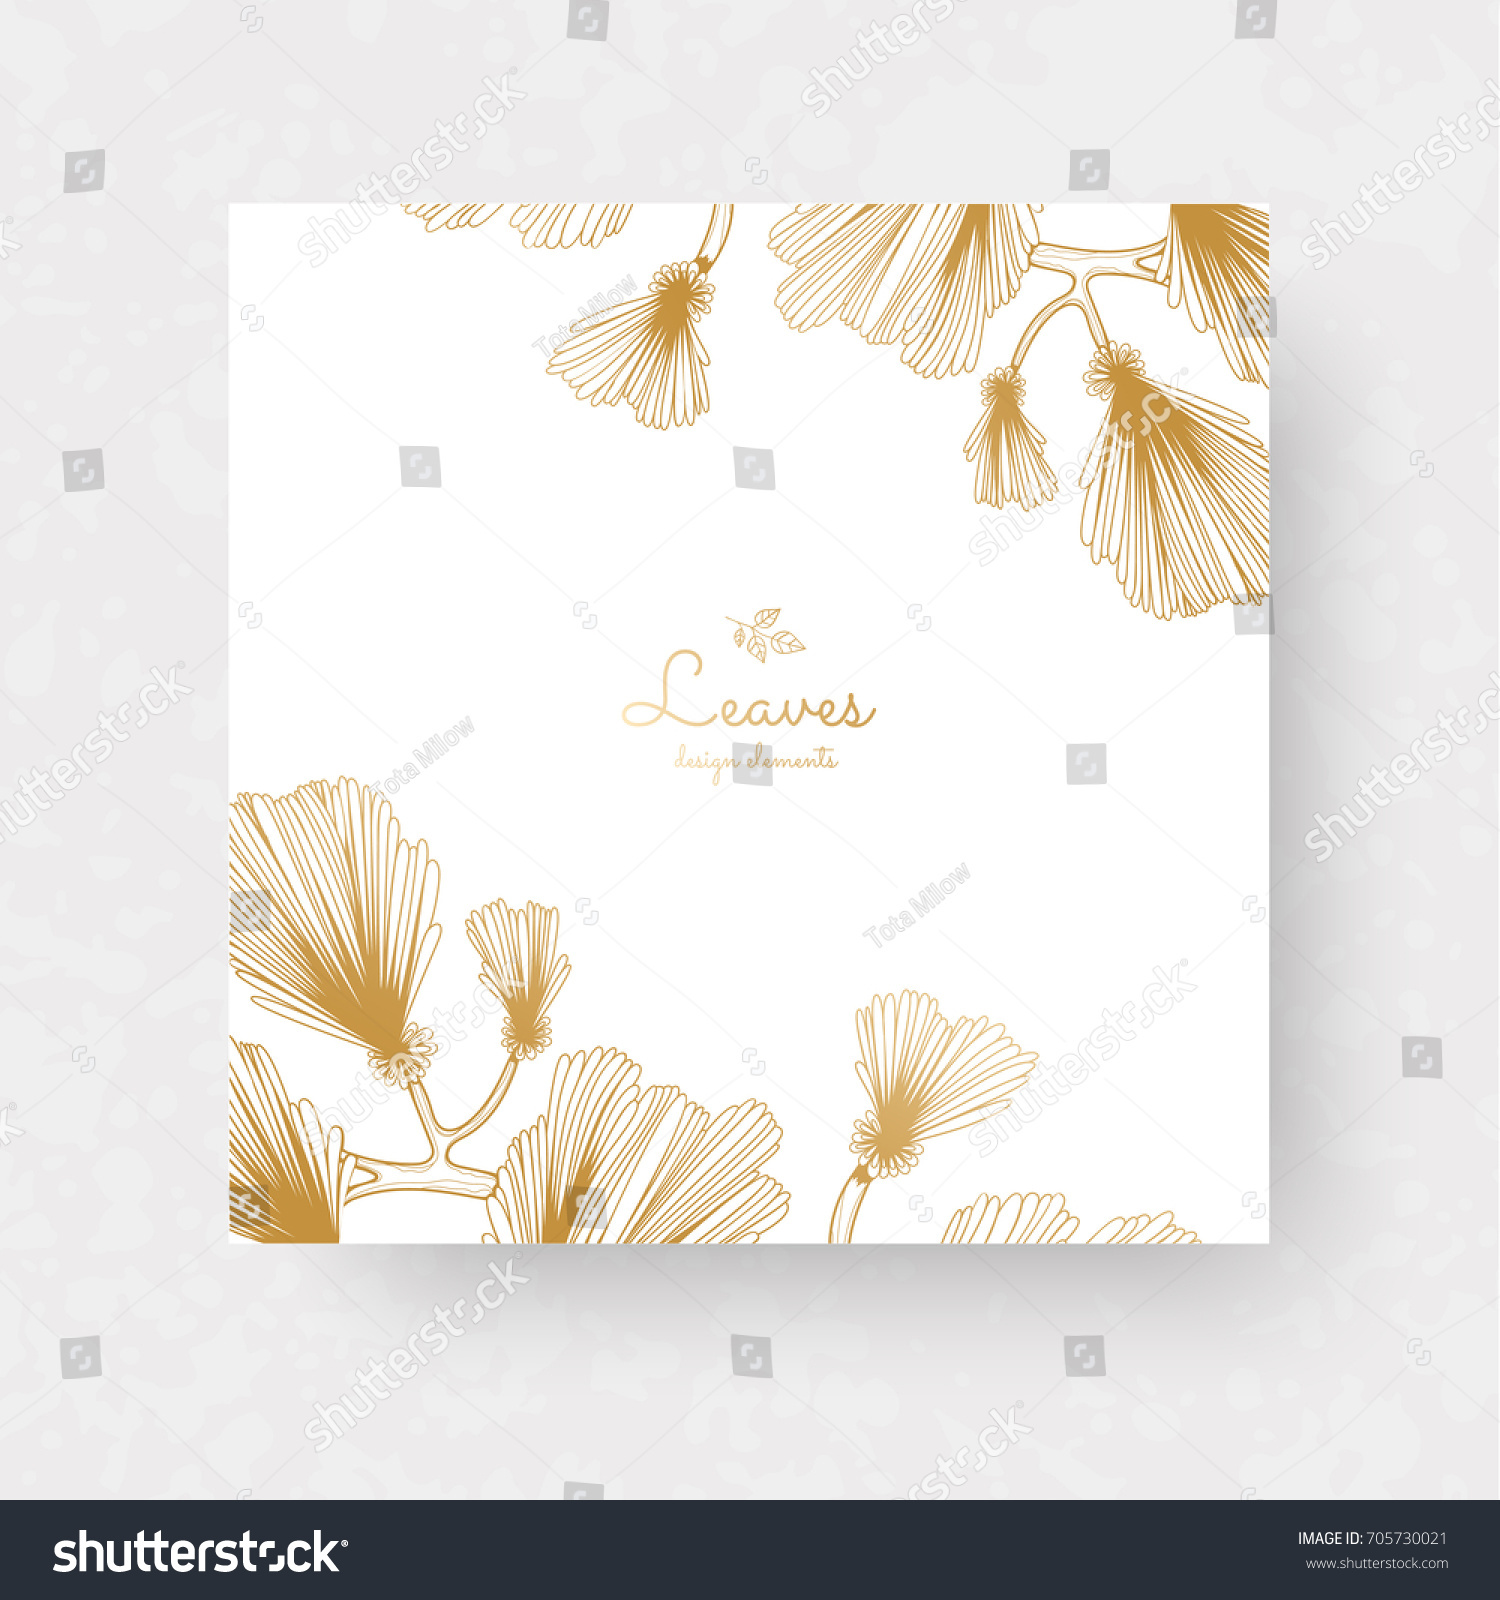 Ginkgo biloba branches leaves medical isolated stock vector ginkgo biloba branches leaves medical isolated stock vector 705730021 shutterstock stopboris Images